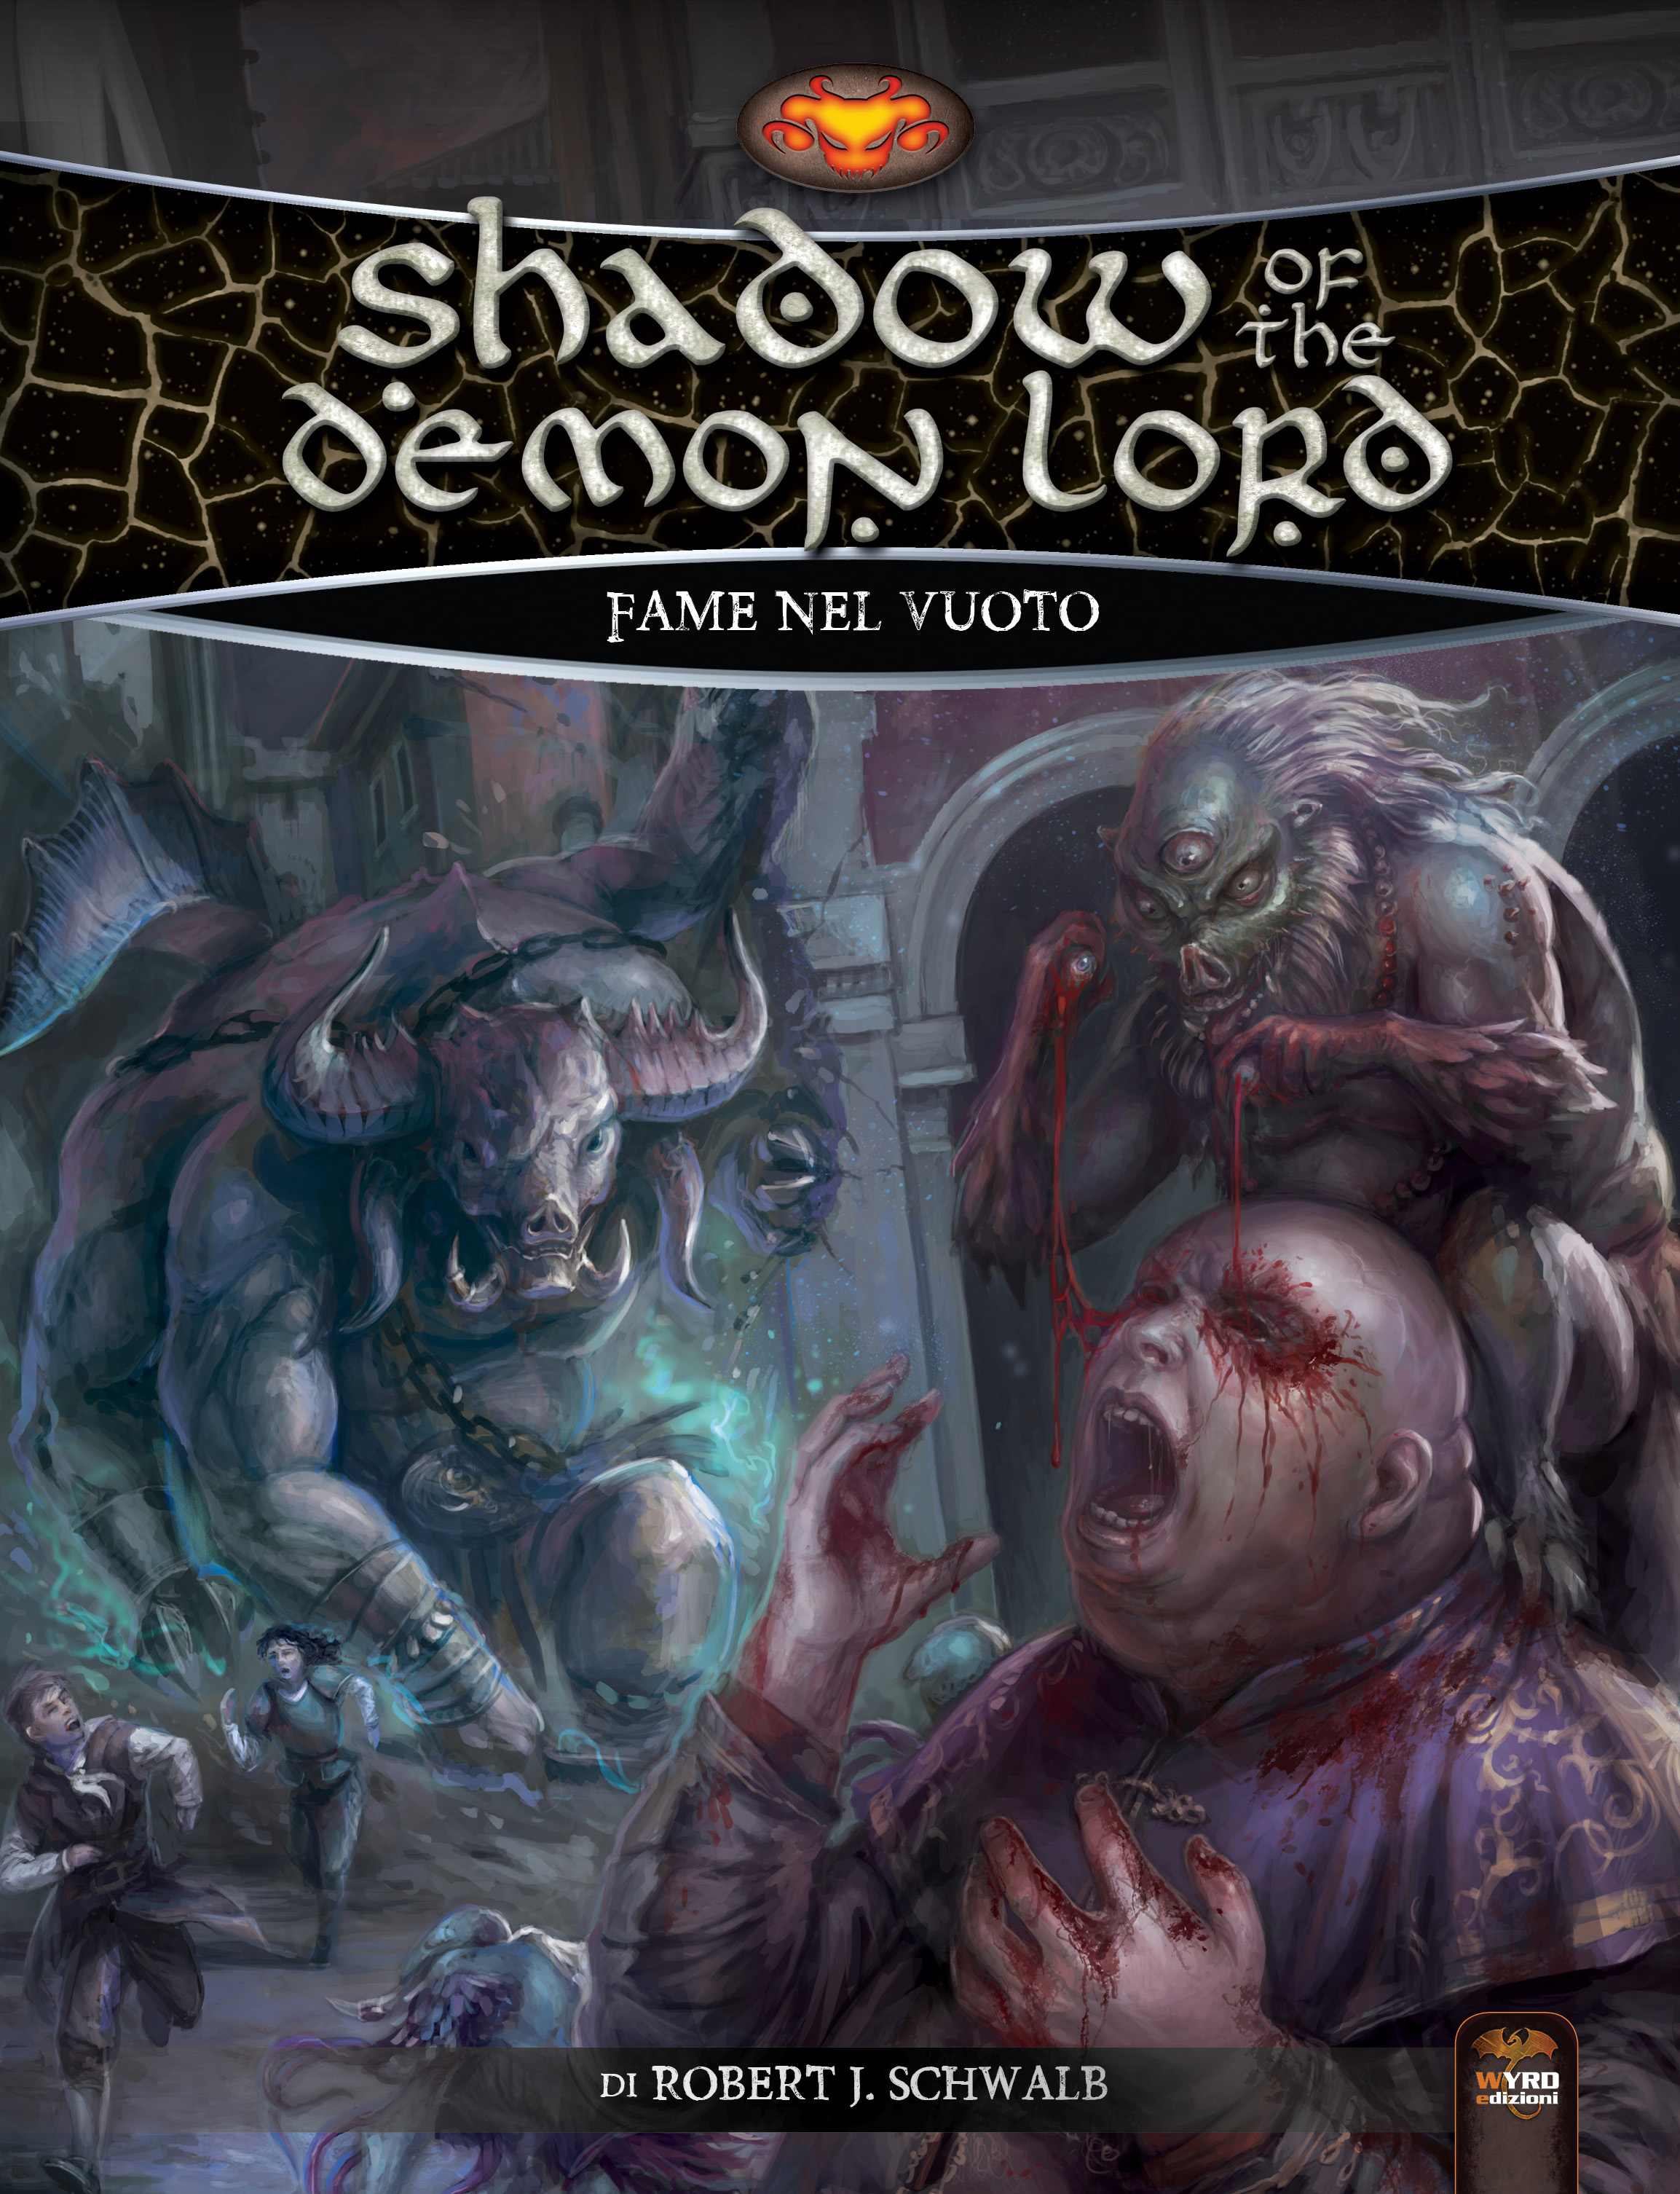 SHADOW OF THE DEMON LORD - FAME NEL VUOTO